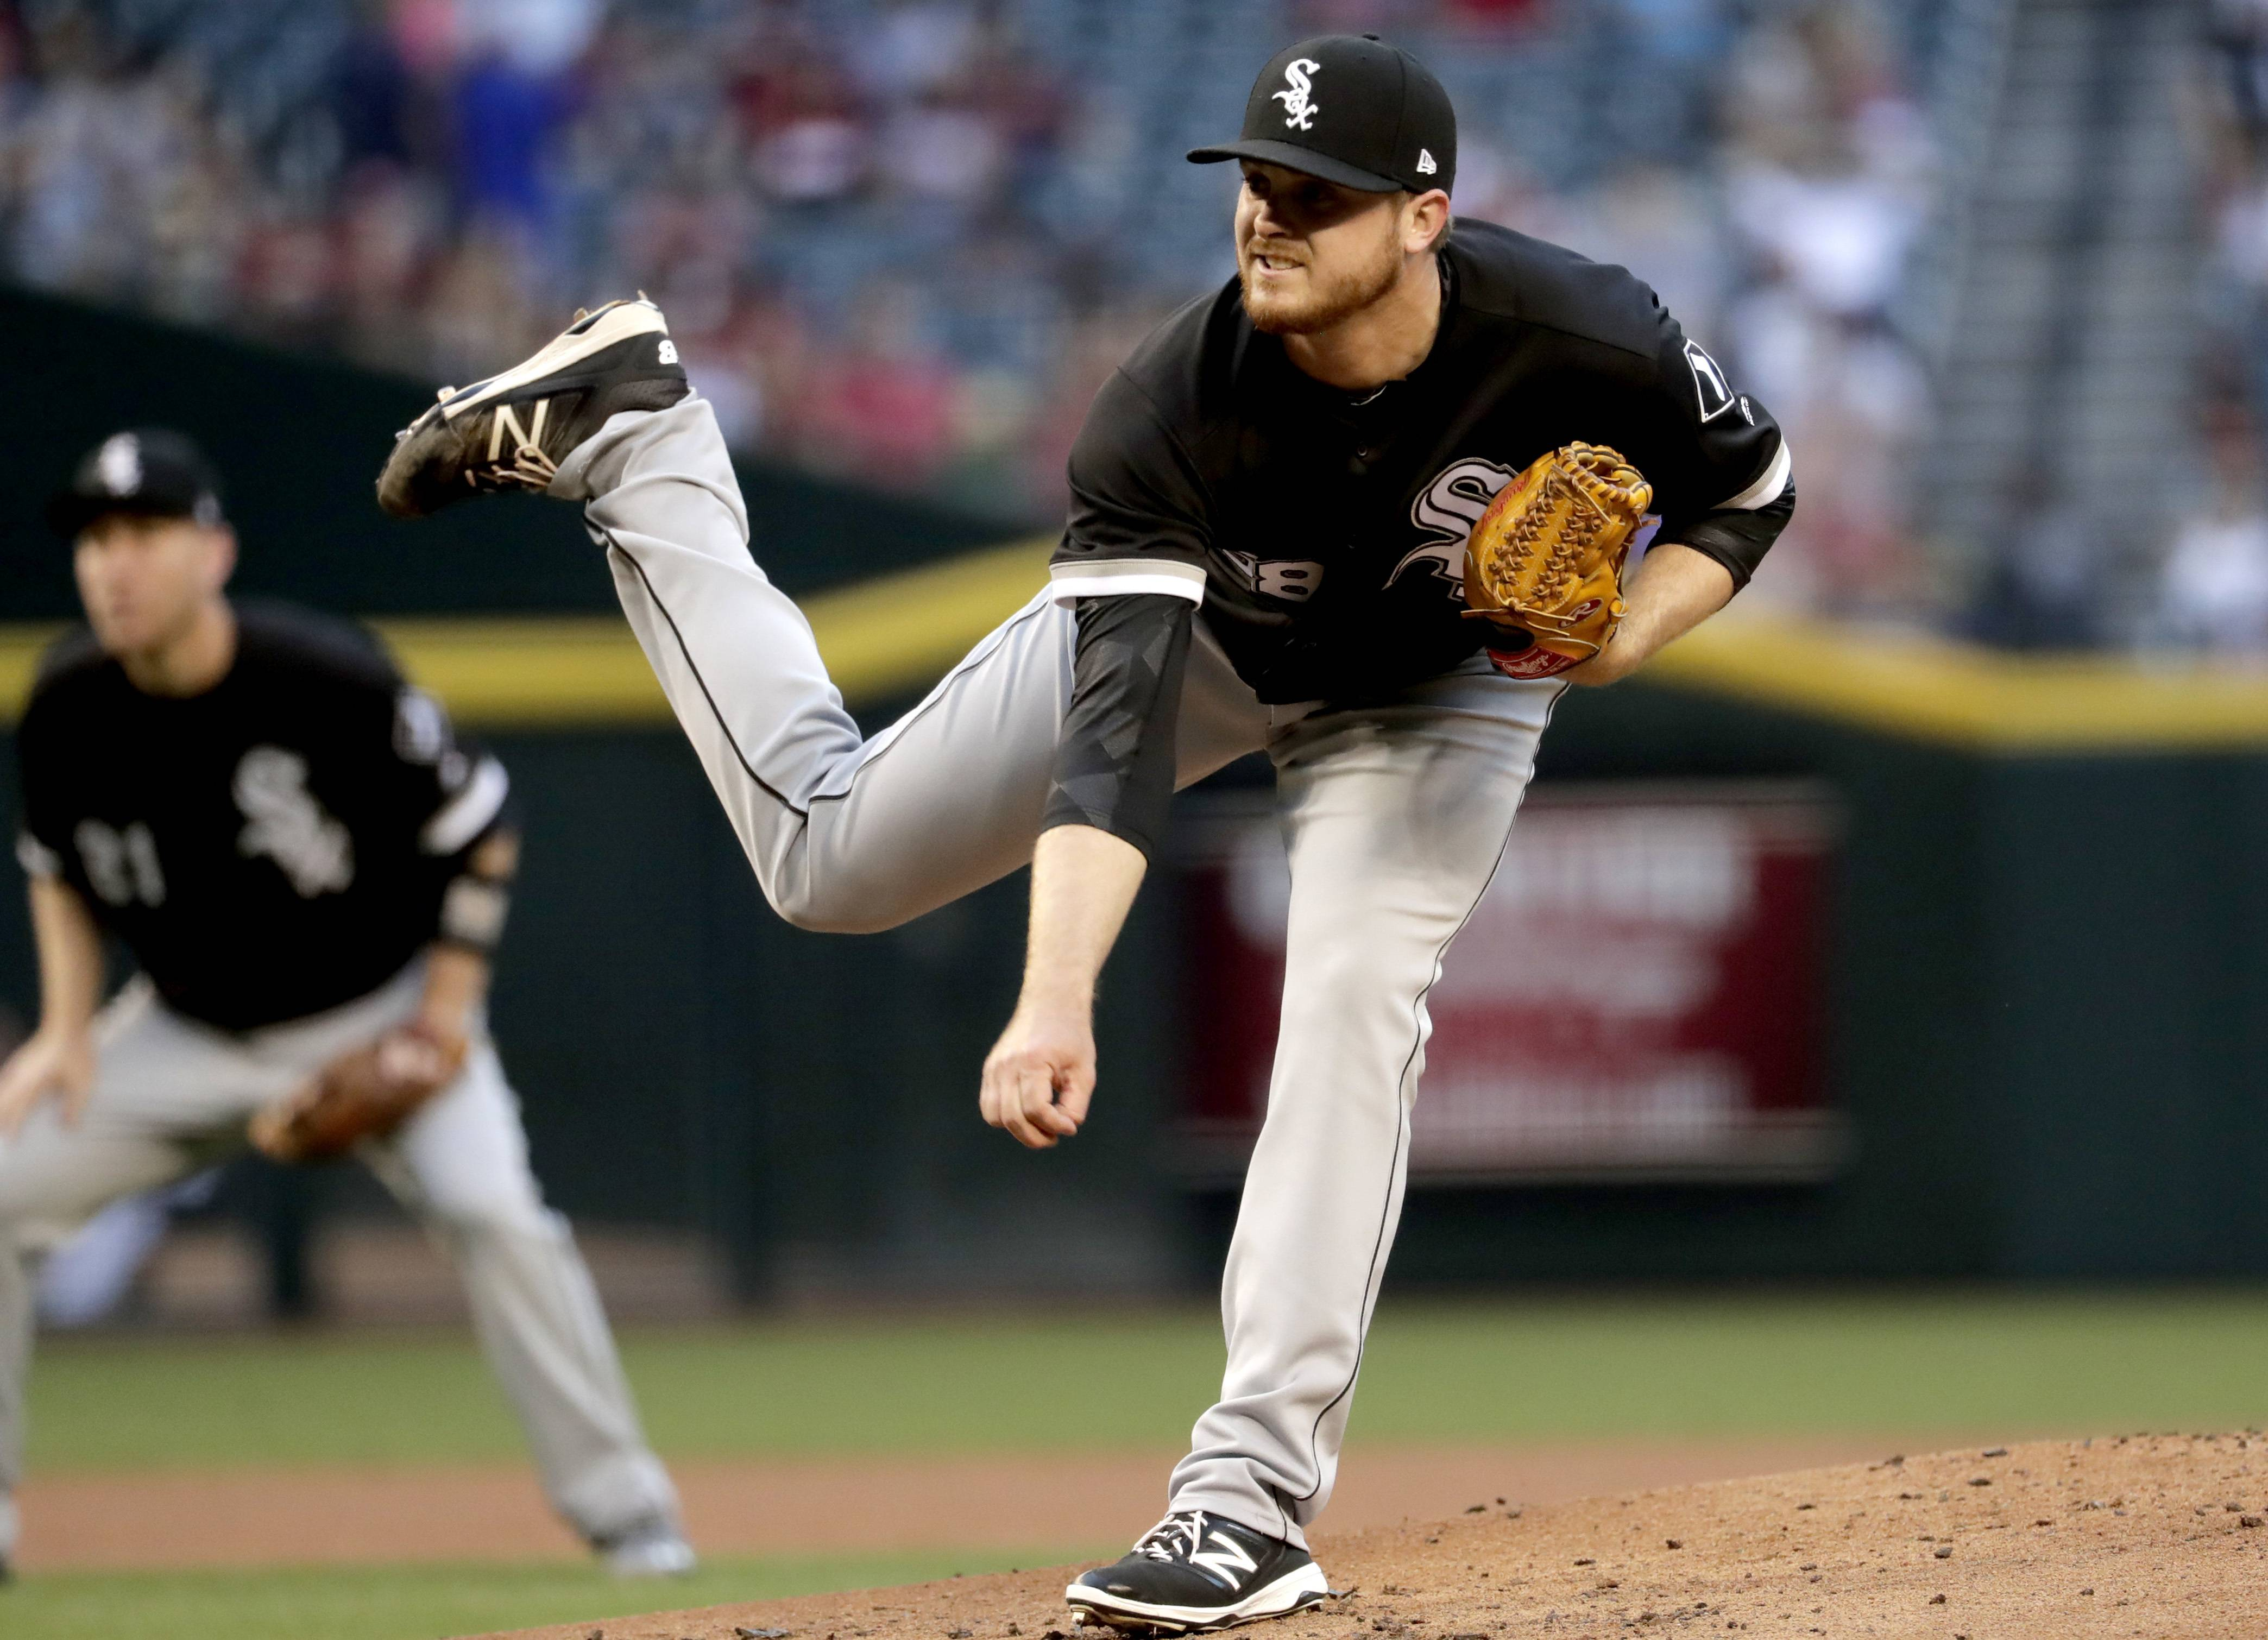 White Sox starter Dylan Covey was put on the 10-day disabled list Friday with a strained left oblique.